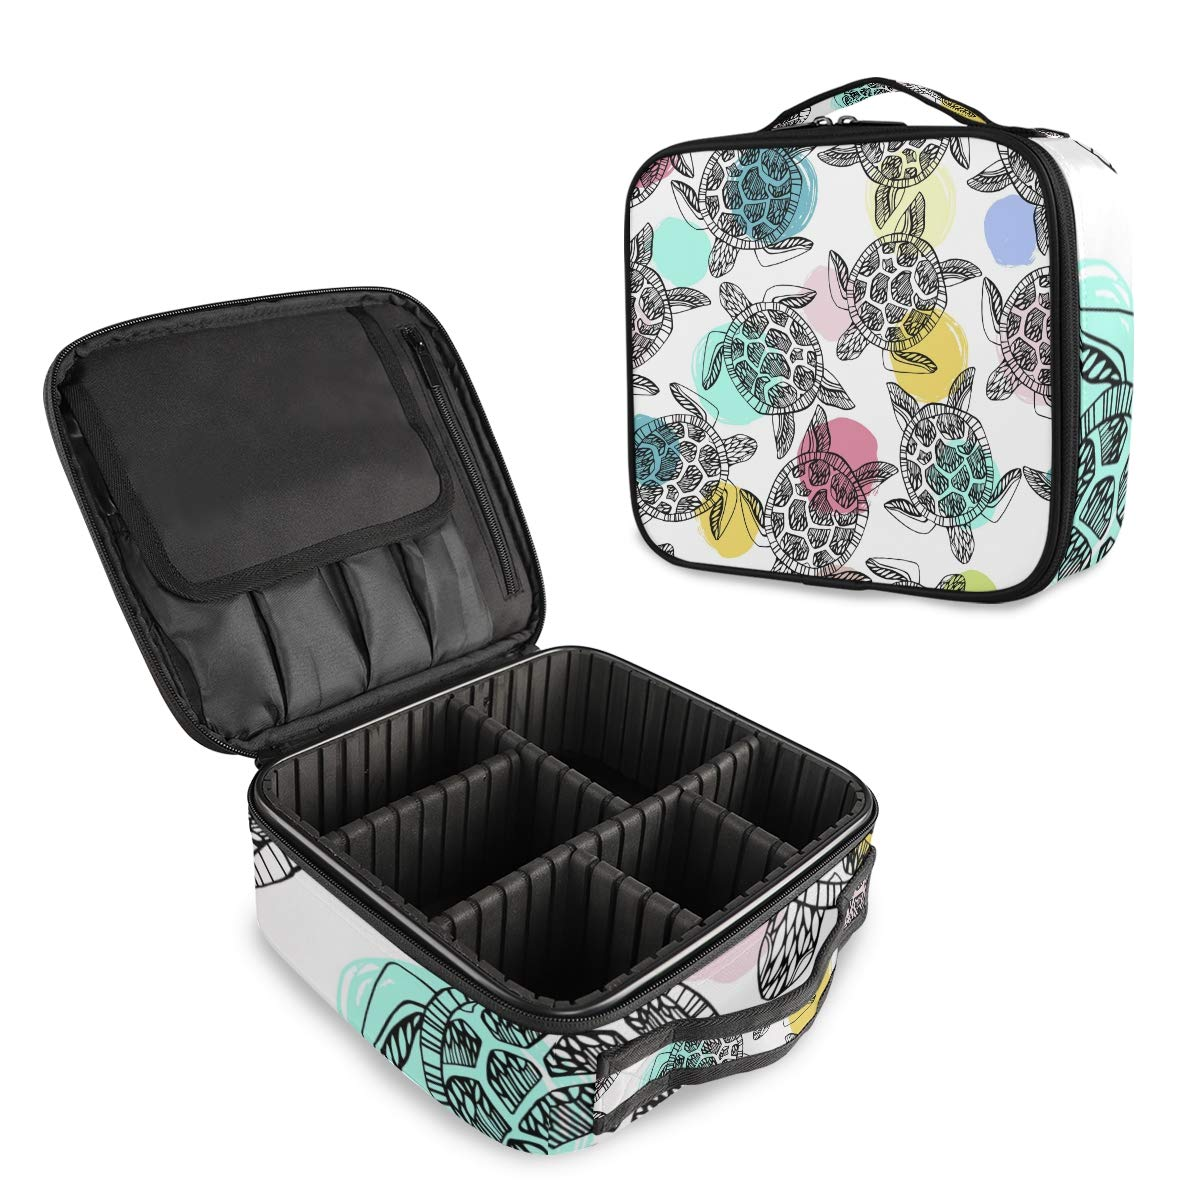 Travel Makeup Bag Portable Organizer Colorful Ma Mail Save money order cheap Dot Turtle Cute